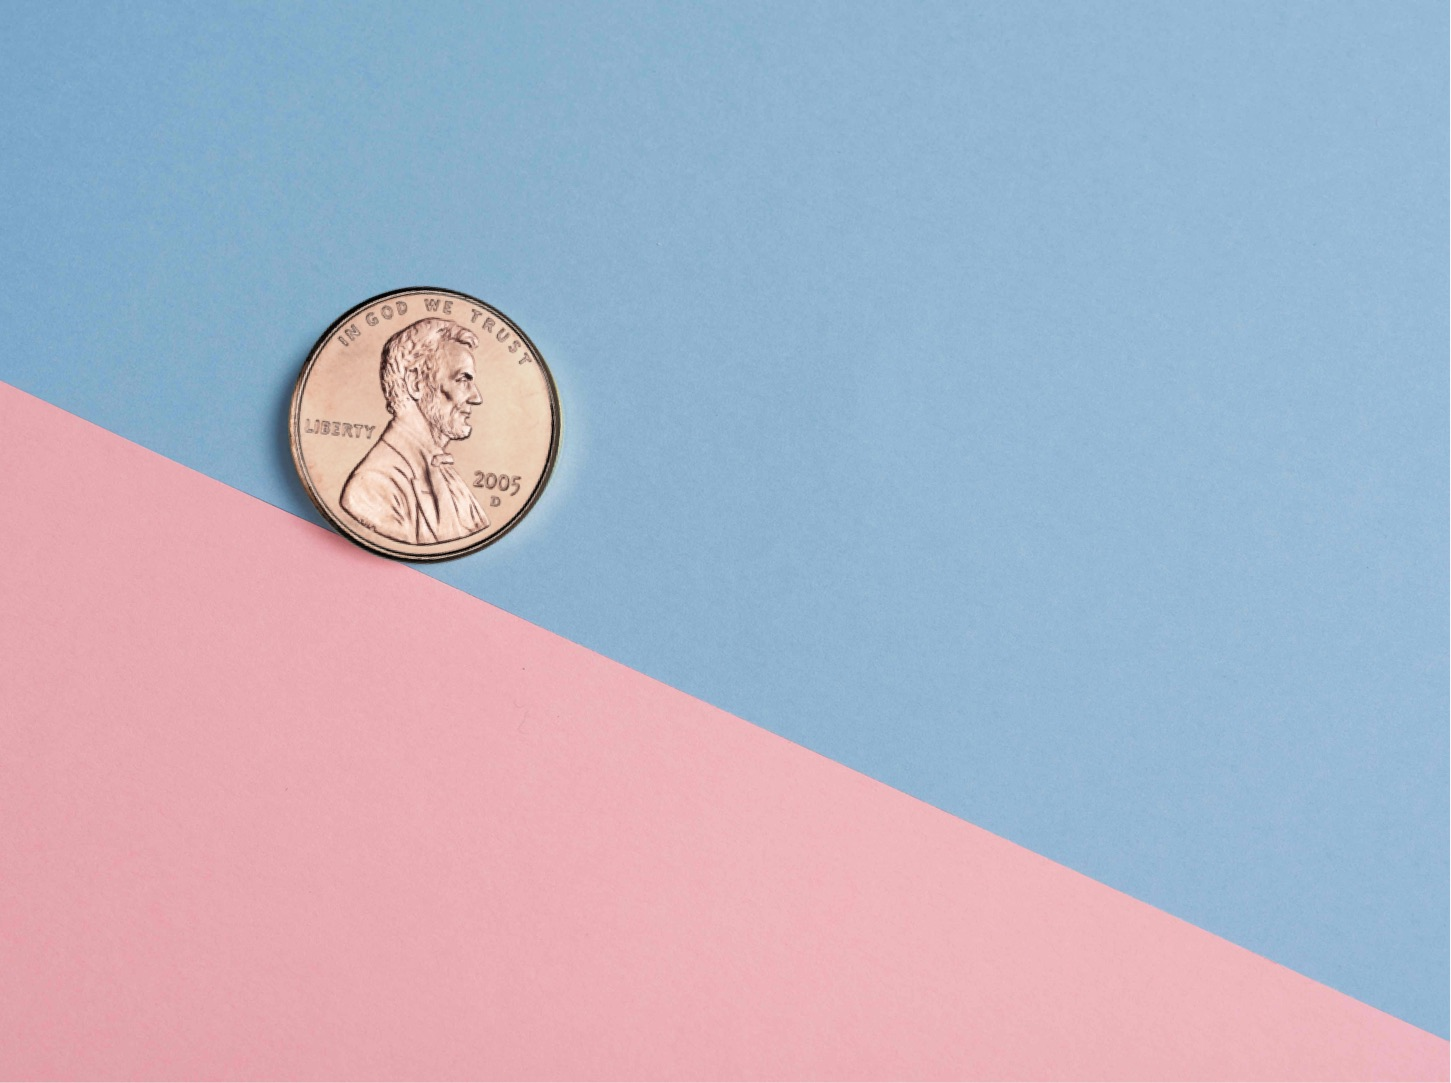 a penny on a pink and blue surface